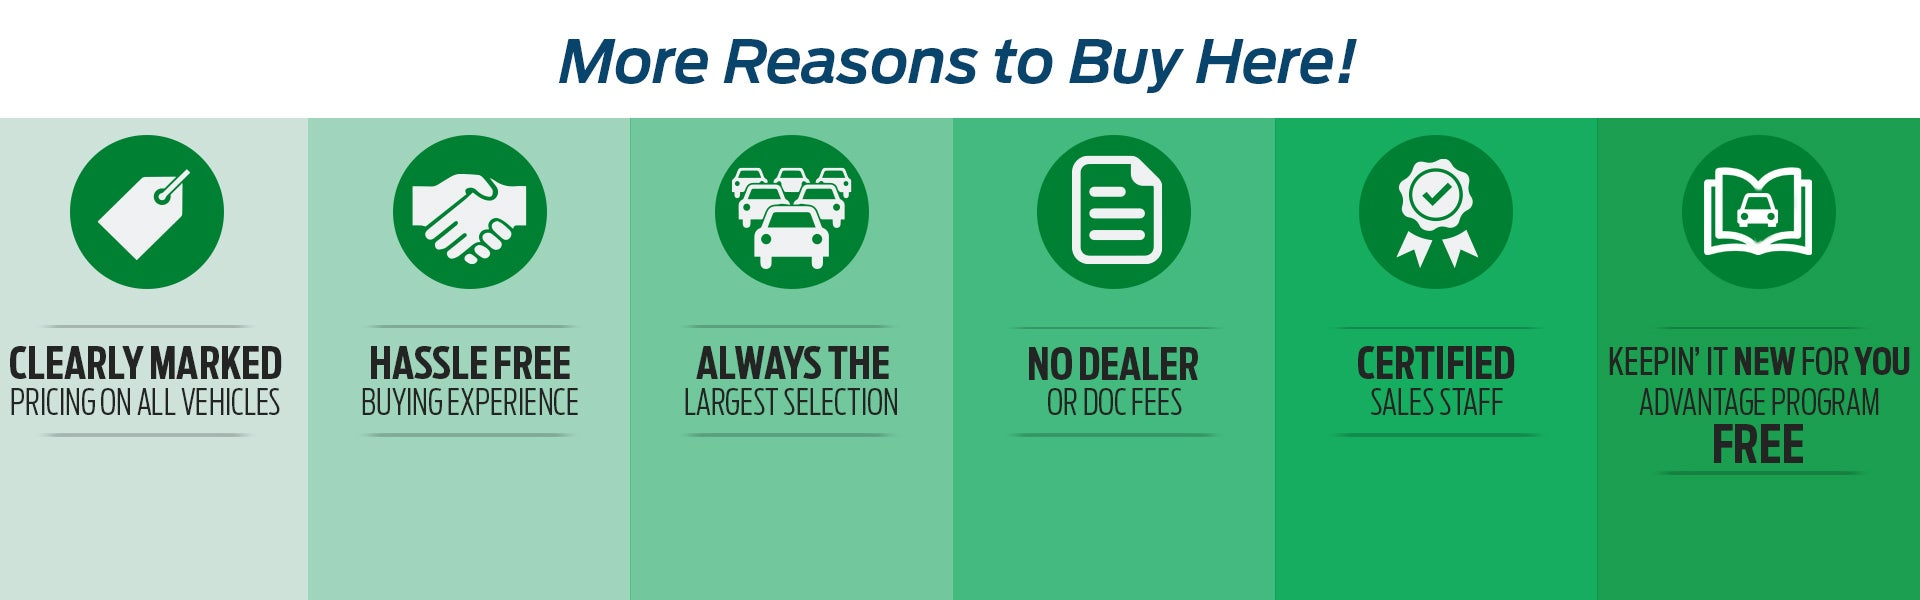 Car Dealers With No Dealer Fees >> No Dealer Fees Policy Portsmouth Ford Ford In Portsmouth Nh